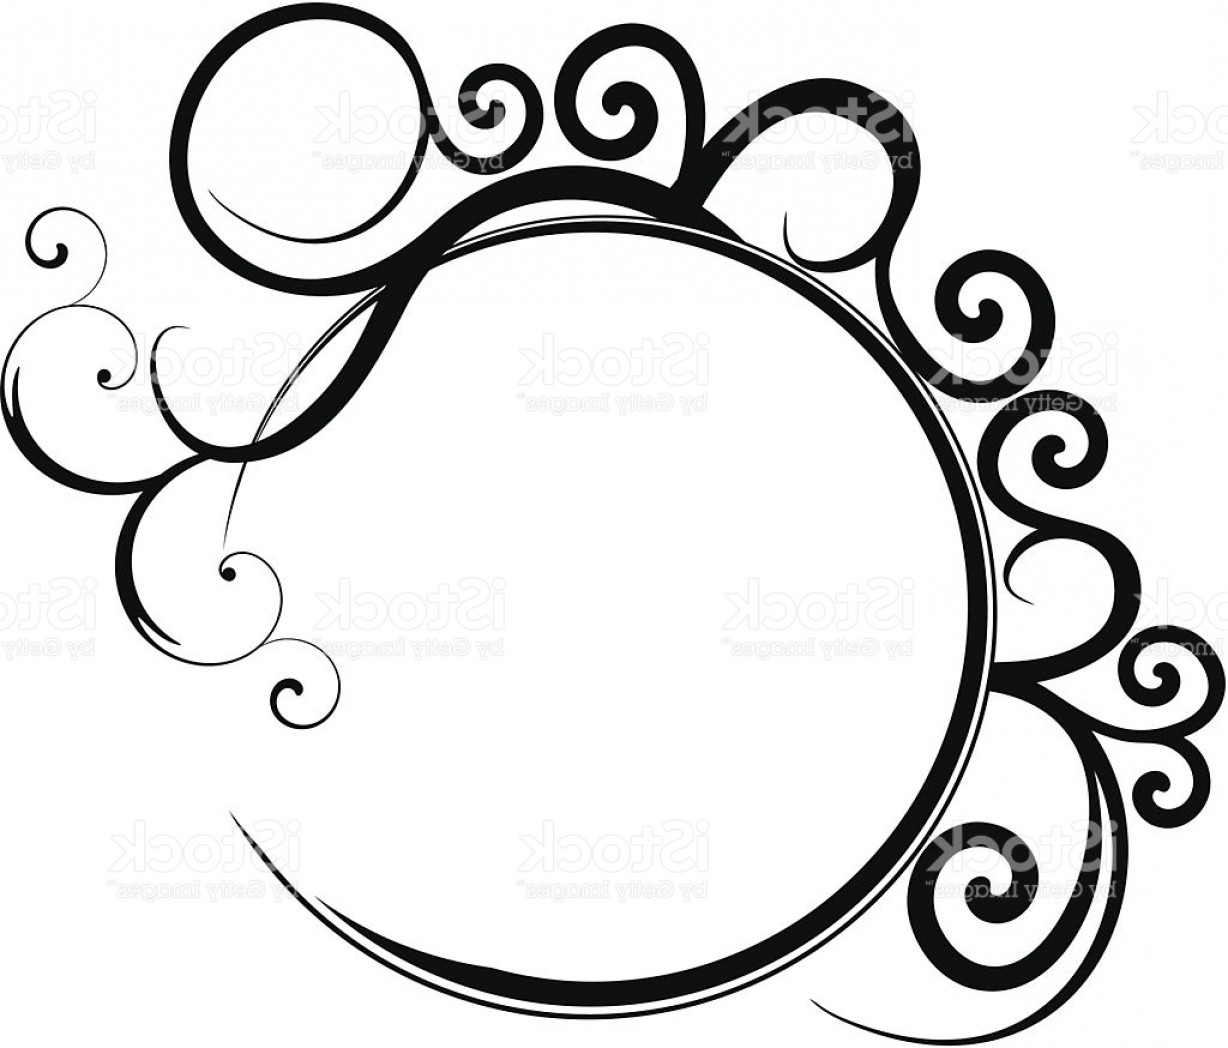 Filigree Oval Frame Vector: Circular Black Filigree Frame Gm